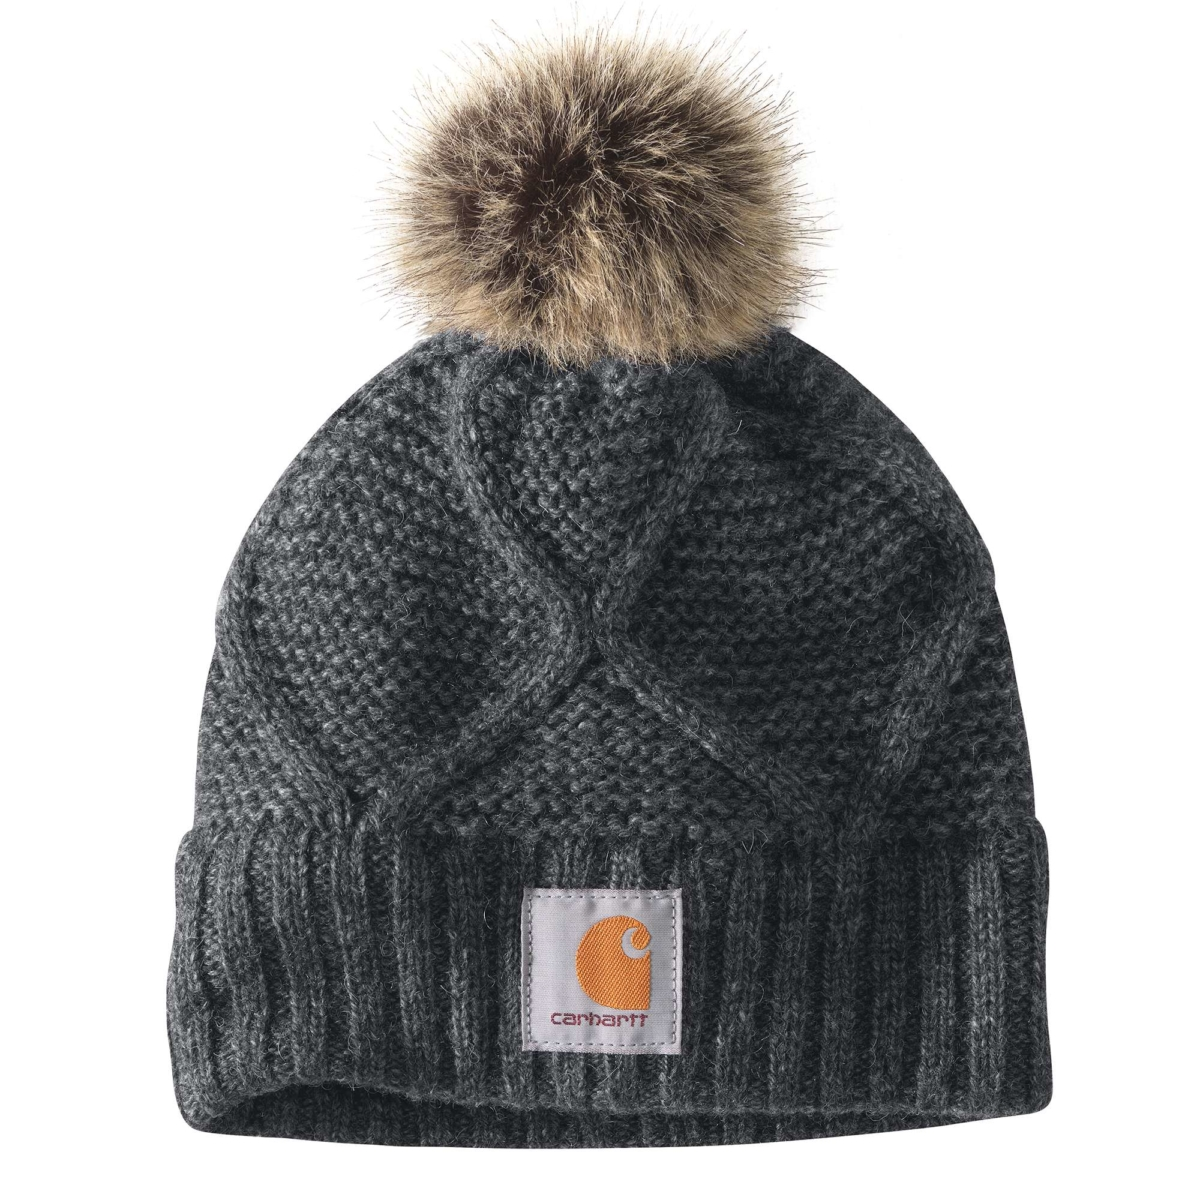 Carhartt Cable Knit Pom Hat Carbon Heather USA - GOOFASH - Womens HATS